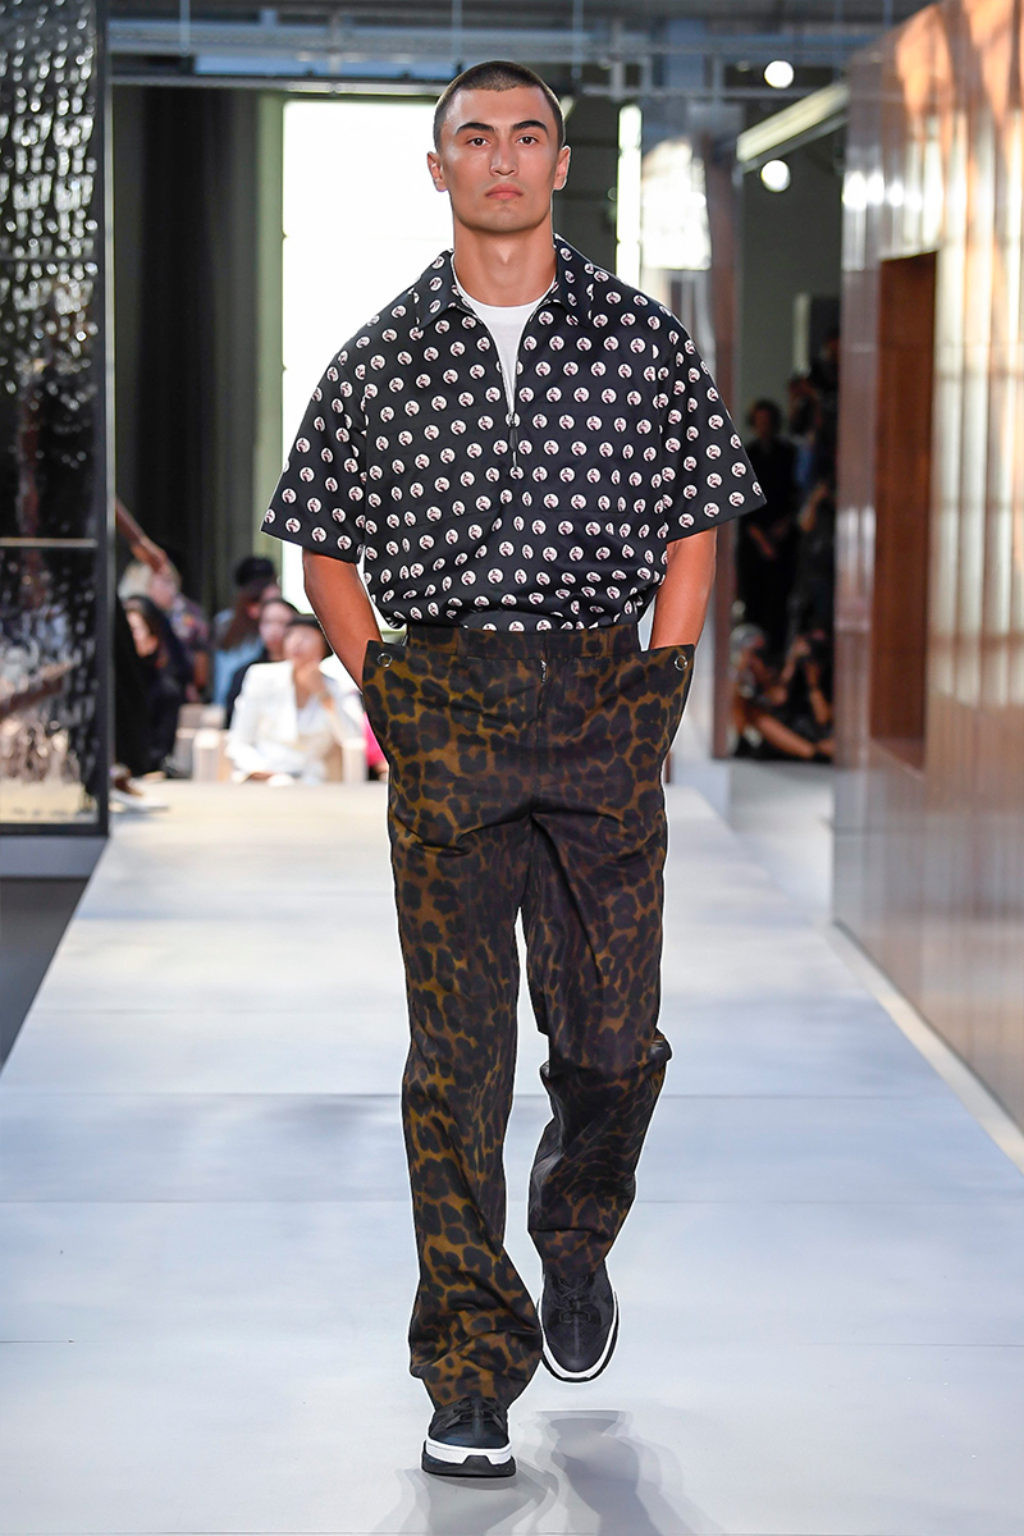 Male Runway Model Wearing Brown Leopard Print Pants and Black Short Sleeve Shirt with White Polka Dots-Burberry Men's Collection